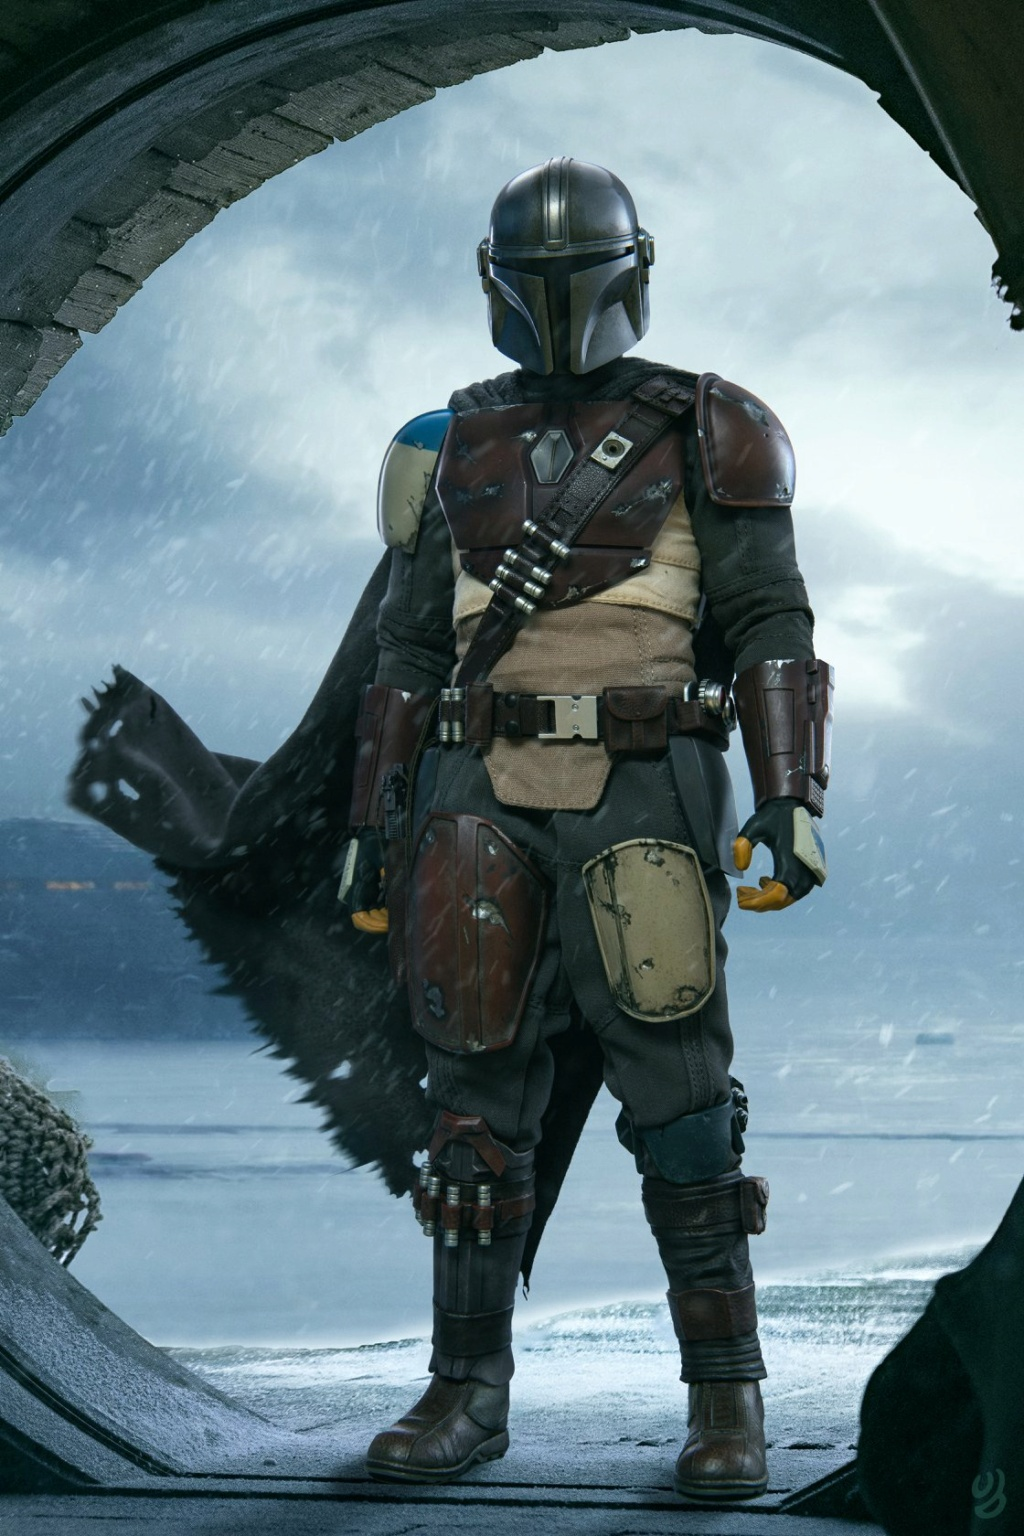 StarWars - NEW PRODUCT: HOT TOYS: THE MANDALORIAN -- THE MANDALORIAN 1/6TH SCALE COLLECTIBLE FIGURE 23125